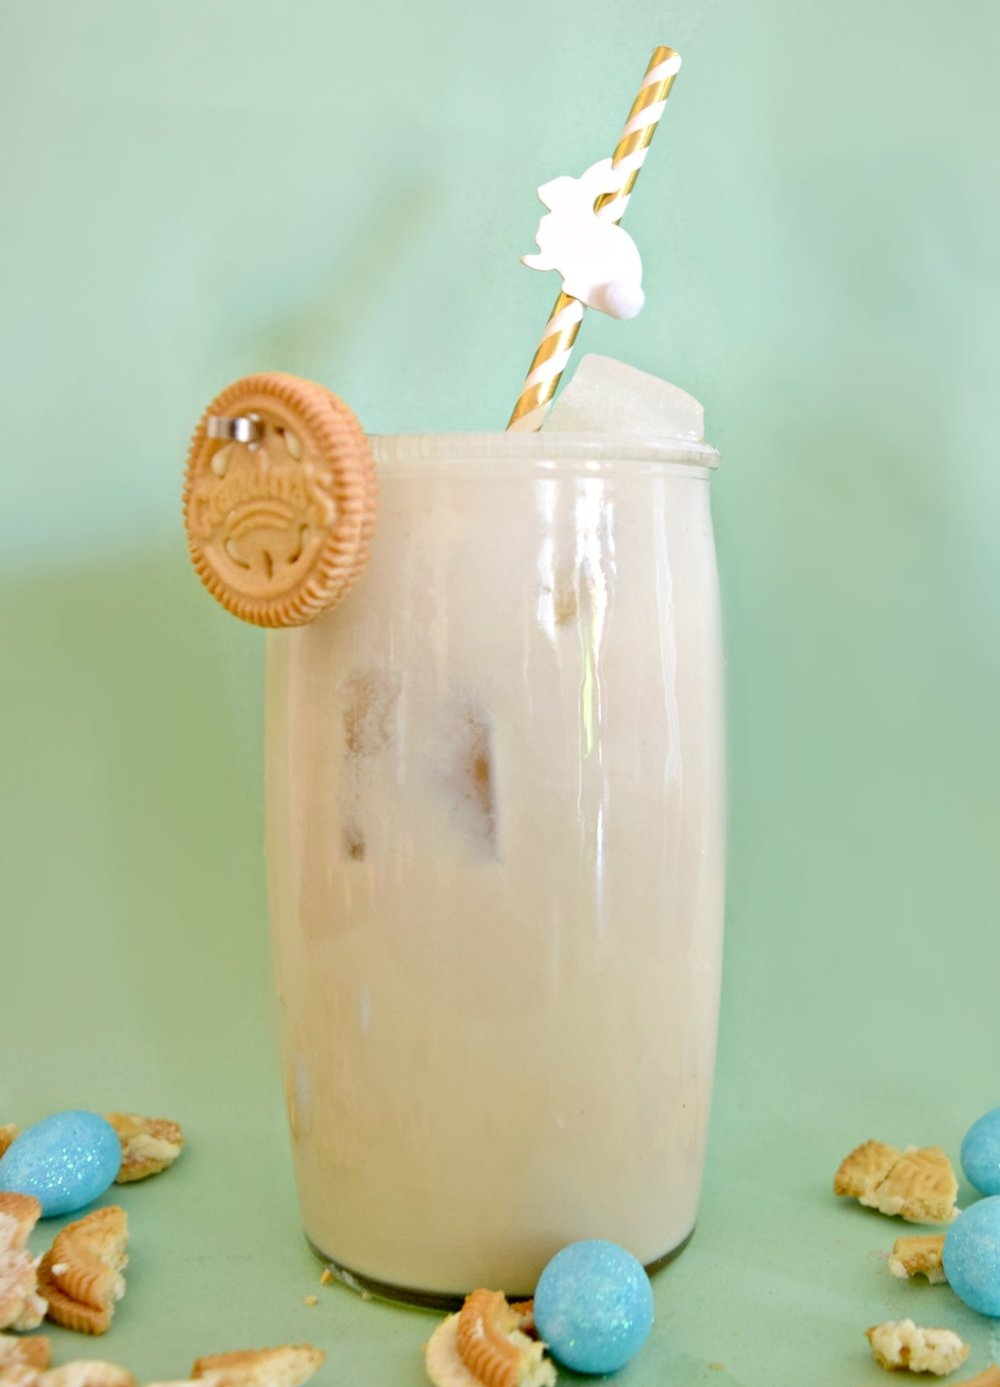 BOM BOM Egg Cream Soda Recipe